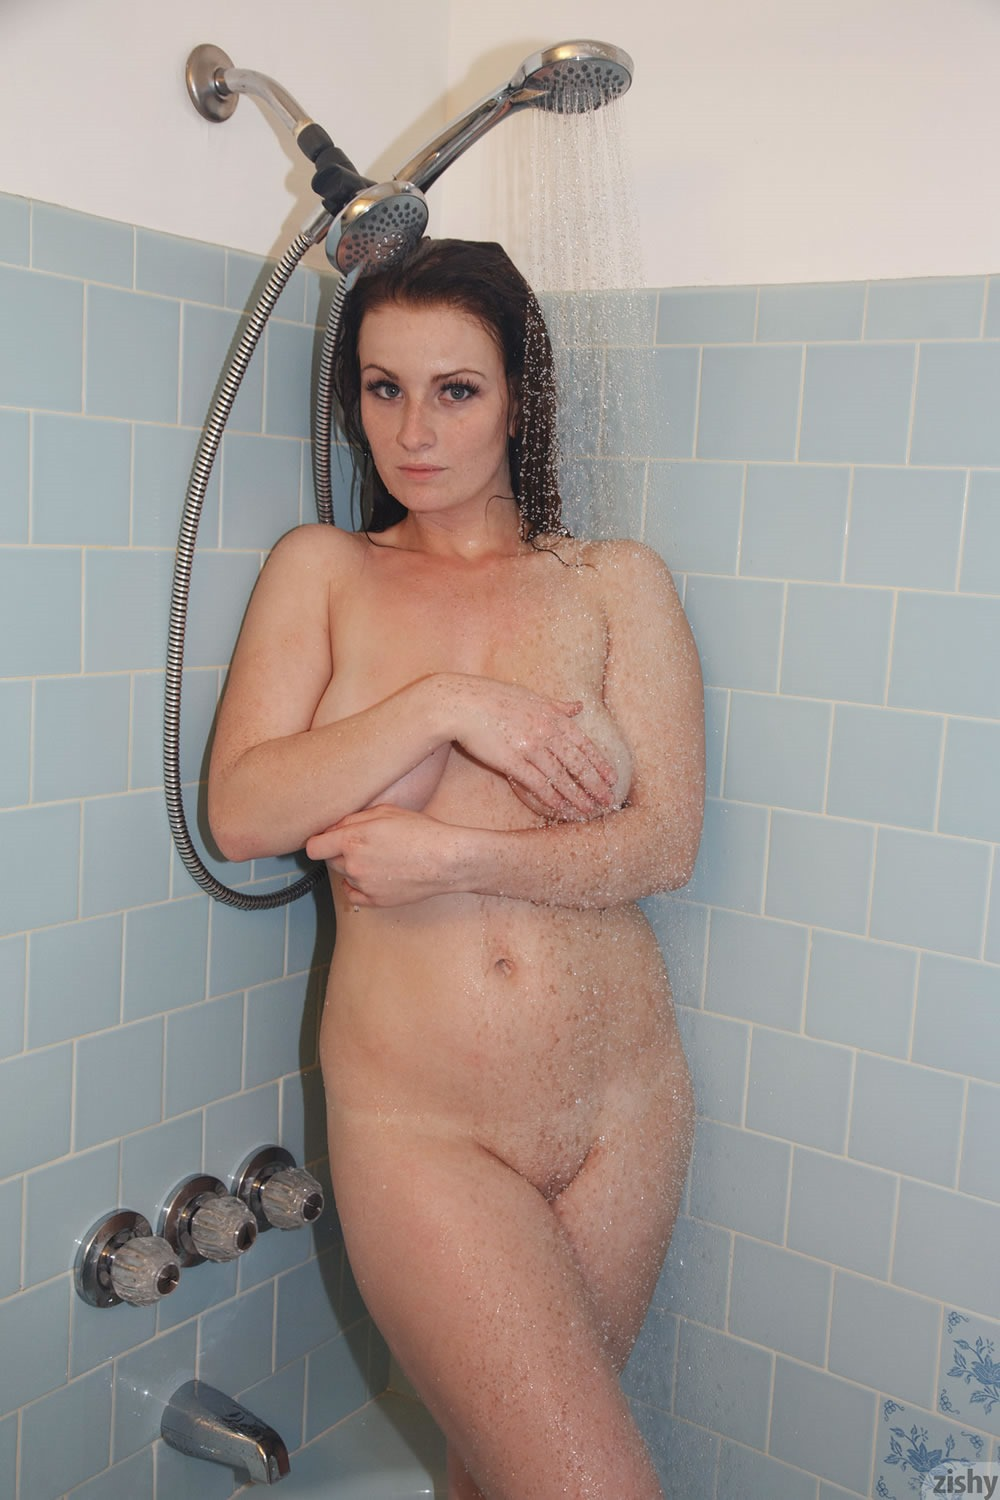 Really. Female naked porn stars in showers opinion